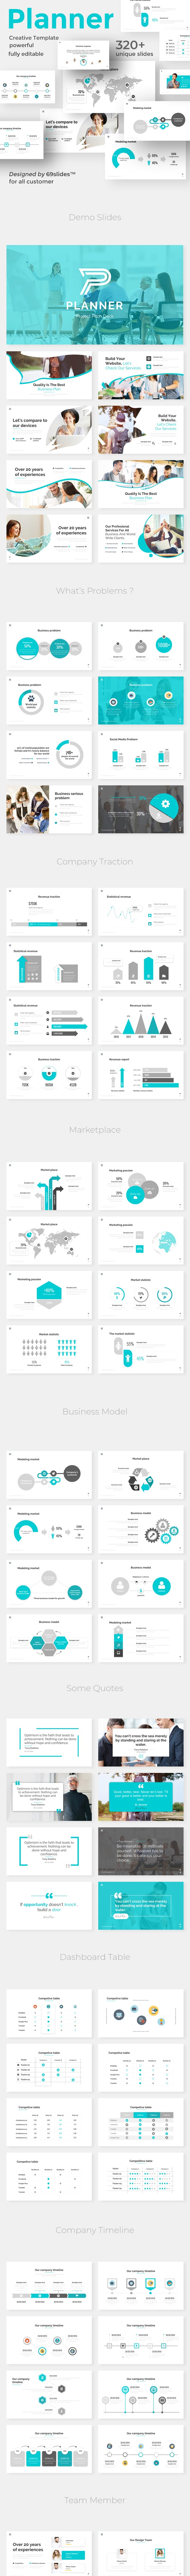 Project Planner Pitch Deck Powerpoint Template - Business PowerPoint Templates